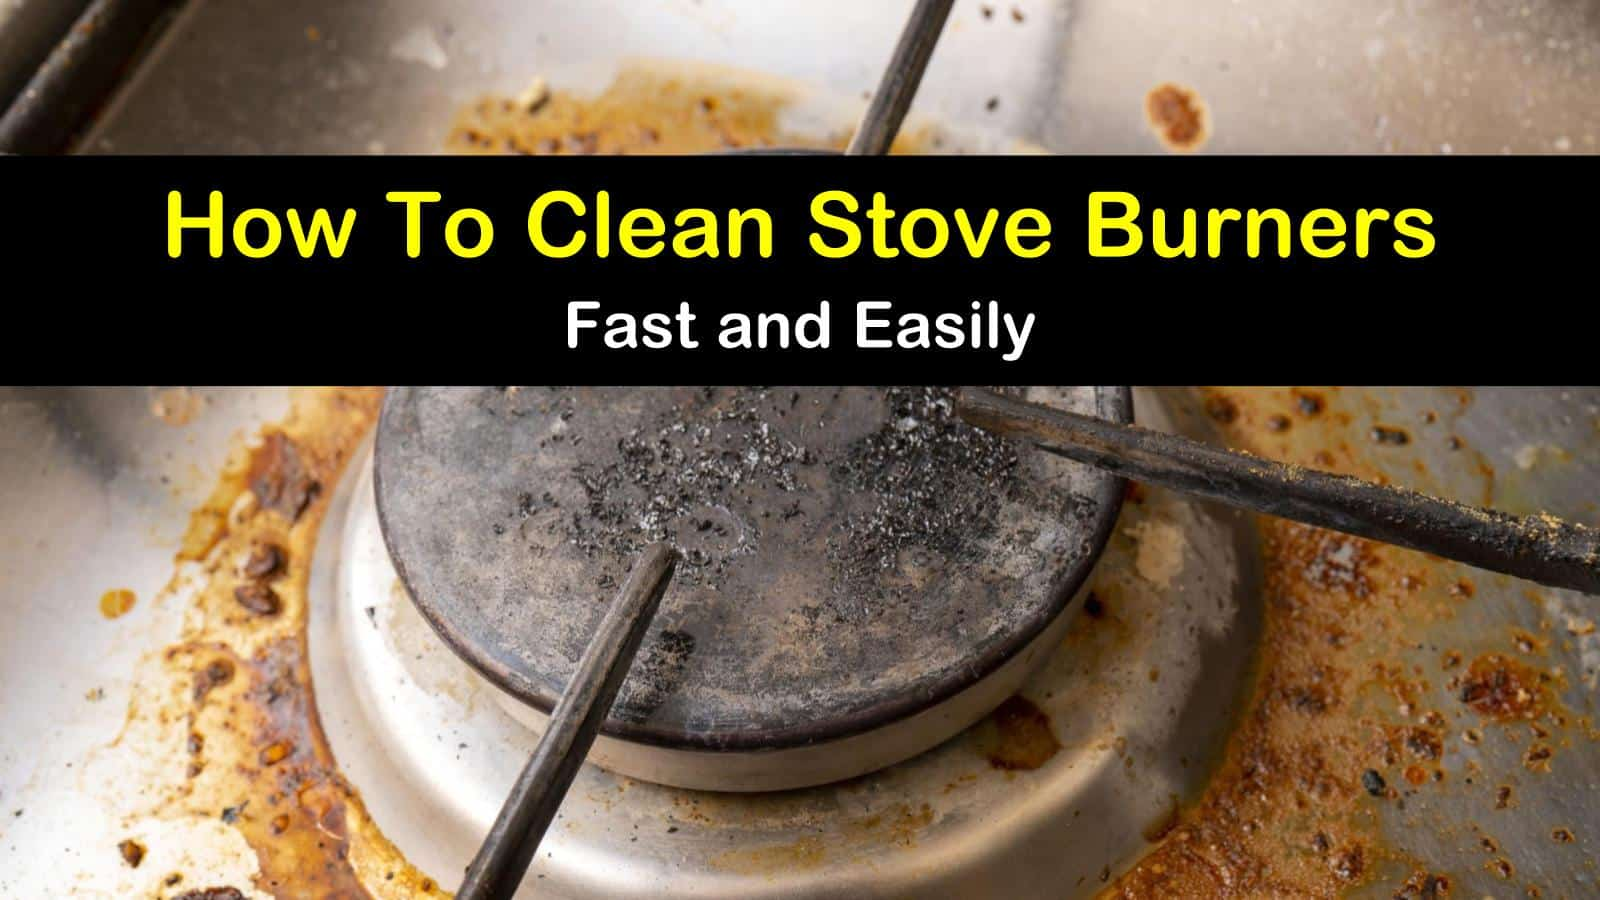 7 Fast Easy Ways To Clean Stove Burners